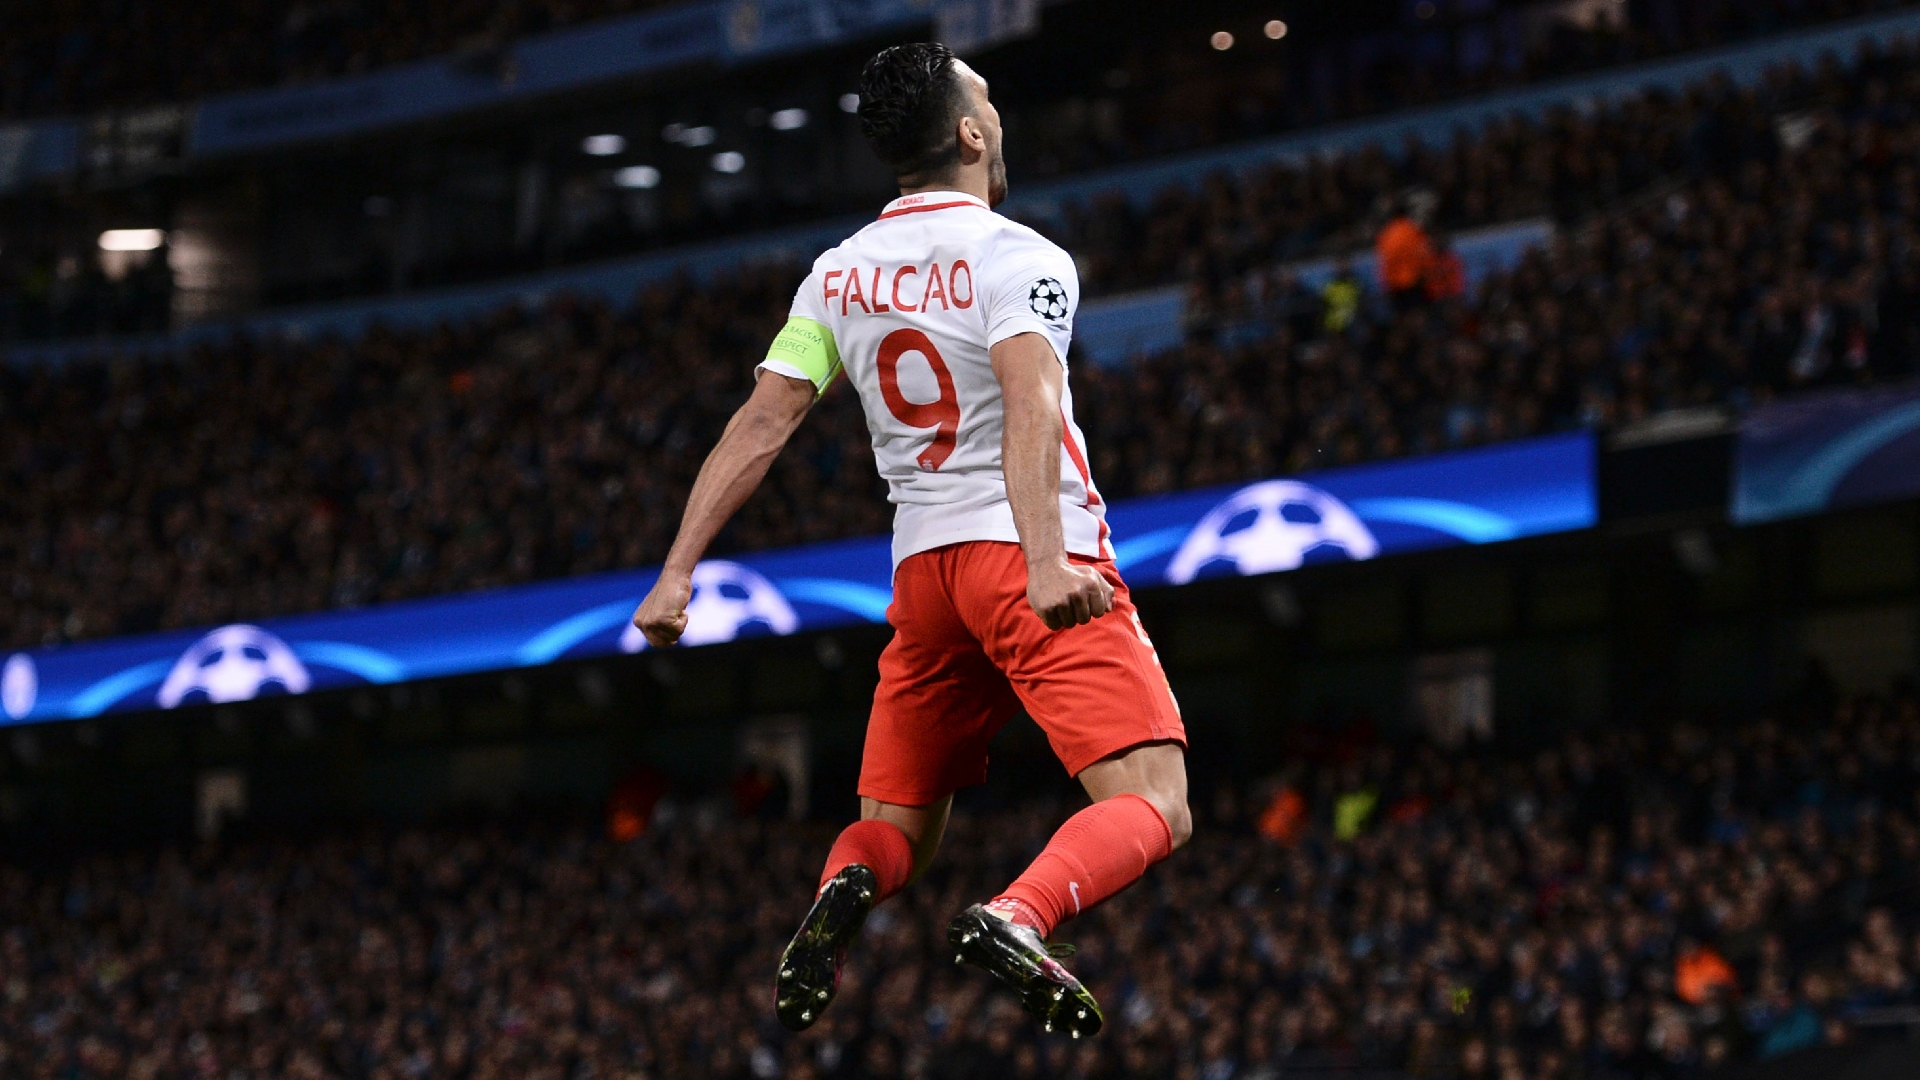 radamel falcao monaco bfy9g1pf59c81edwgmzokjbez - Champions League: Monaco Can Beat Man City - Houllier